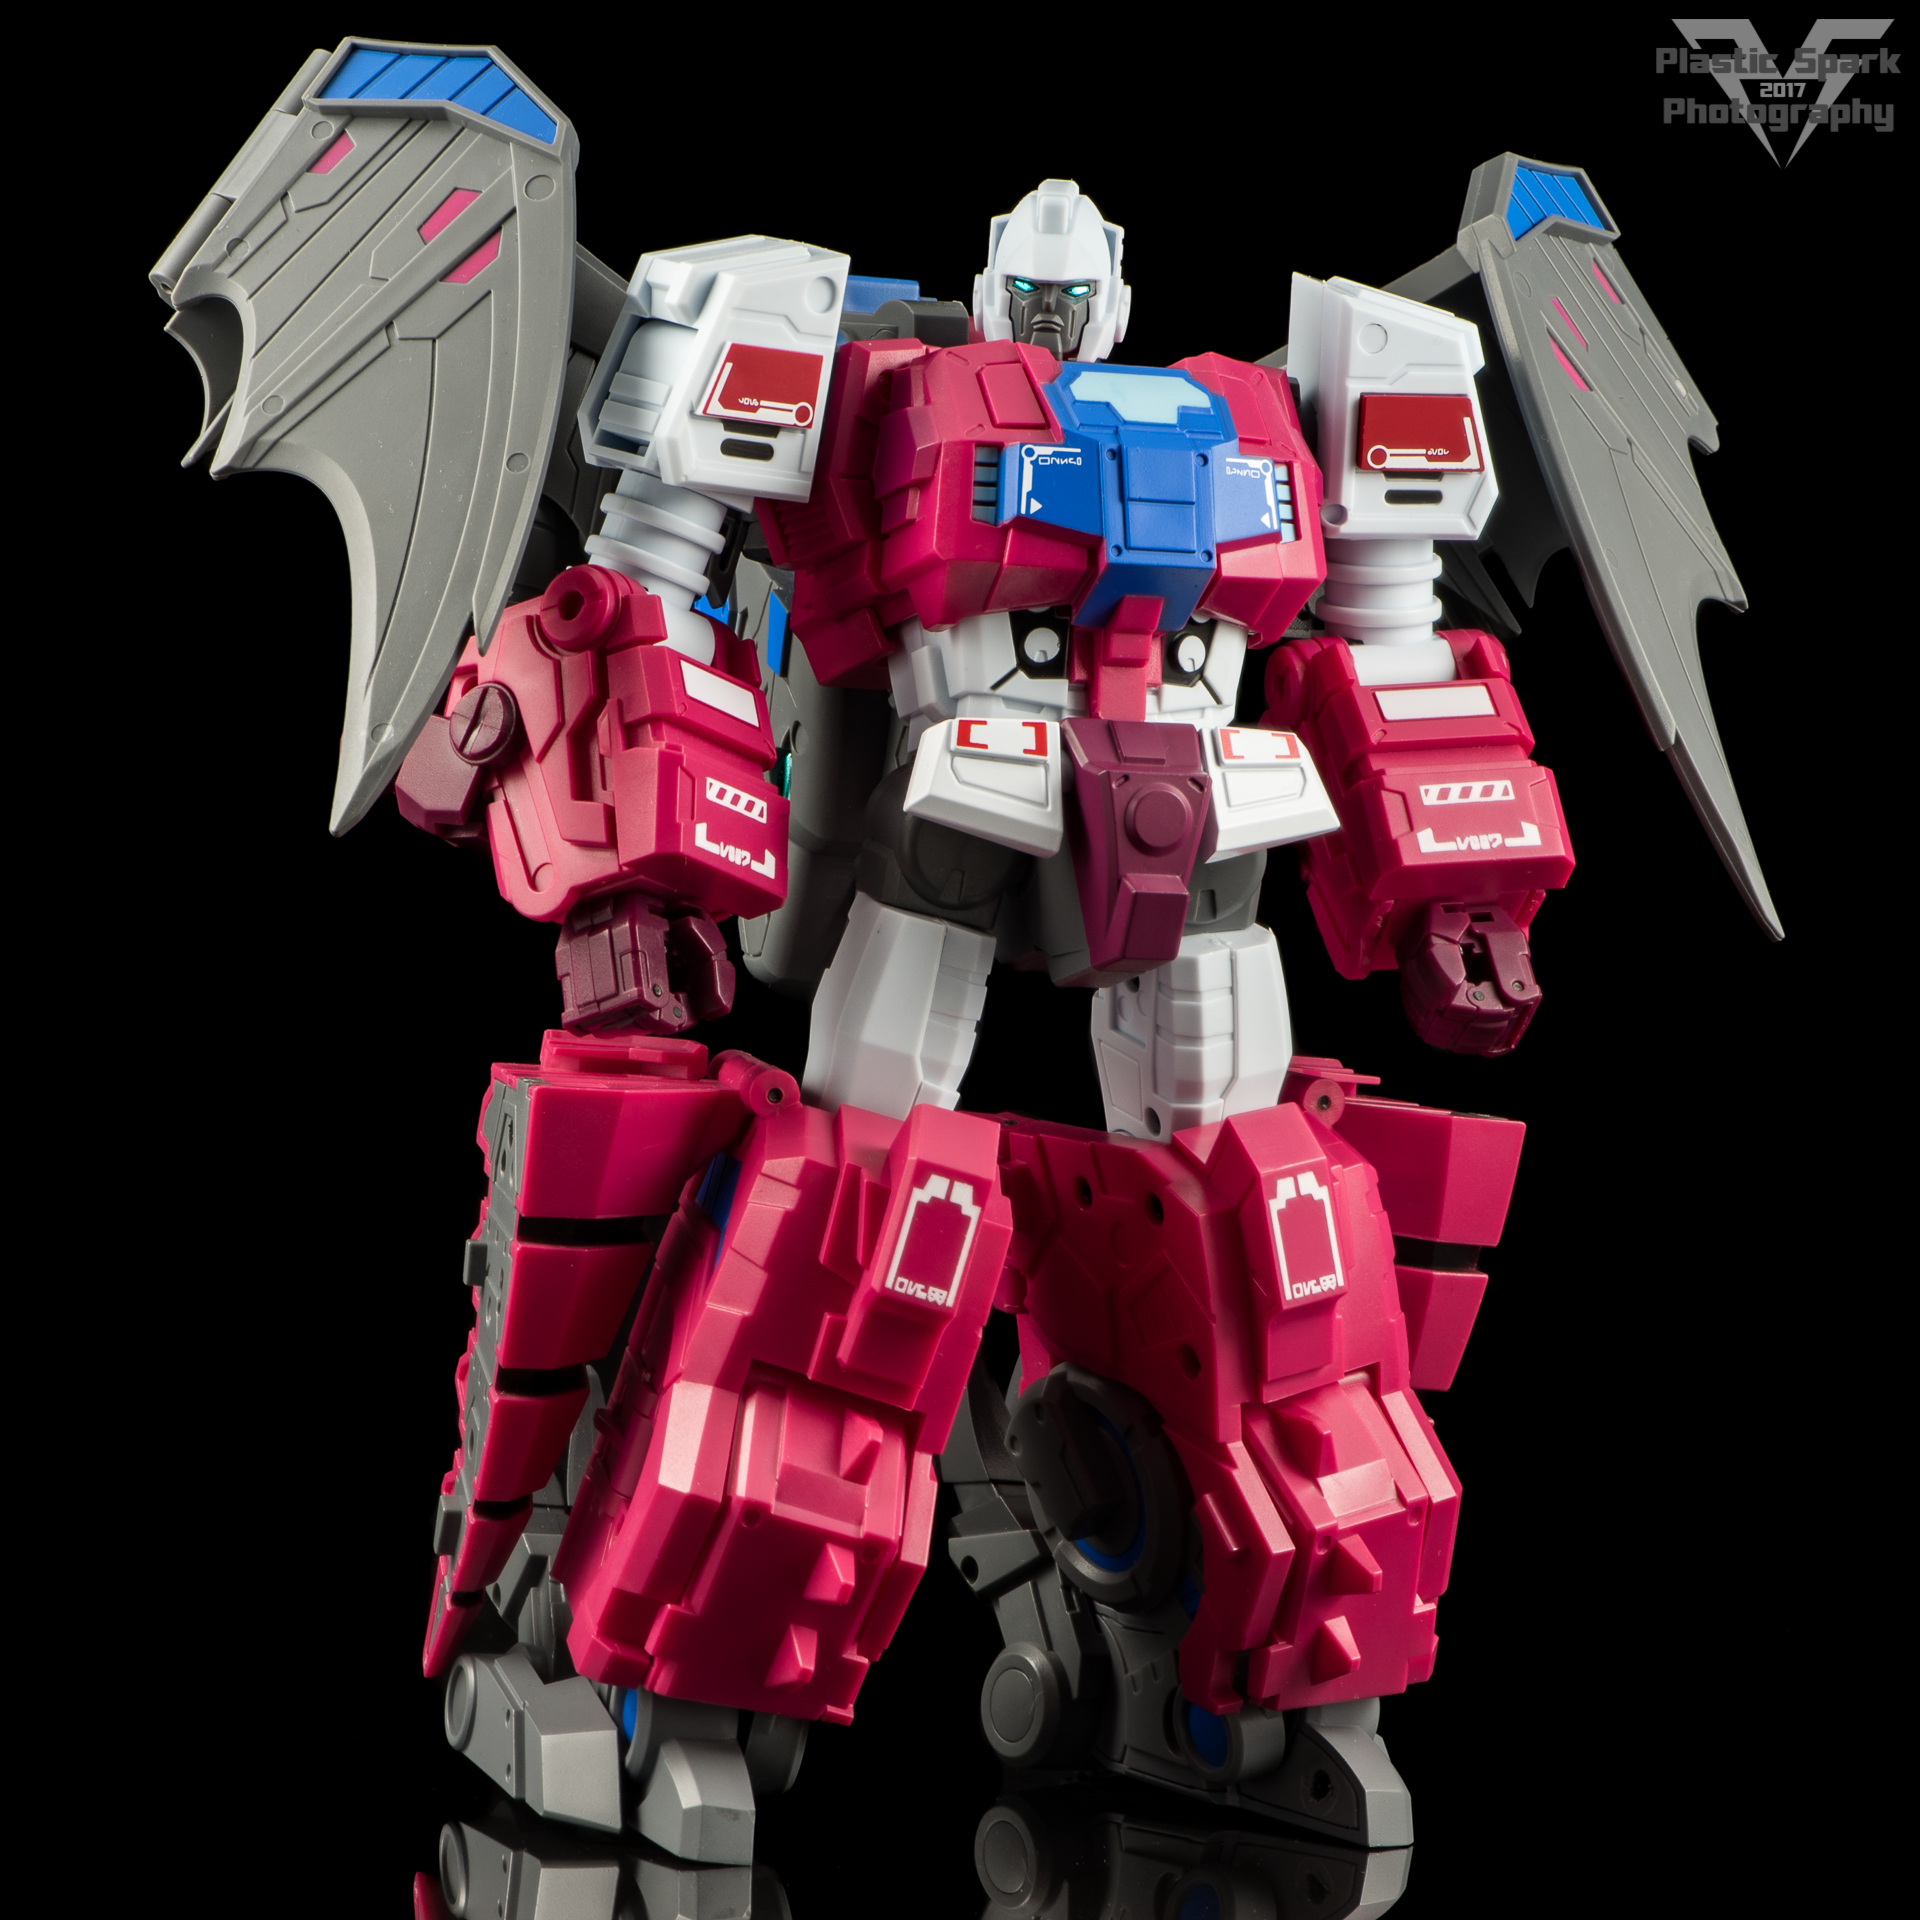 Fans-Hobby-MB-05-Flypro-(31-of-42).png